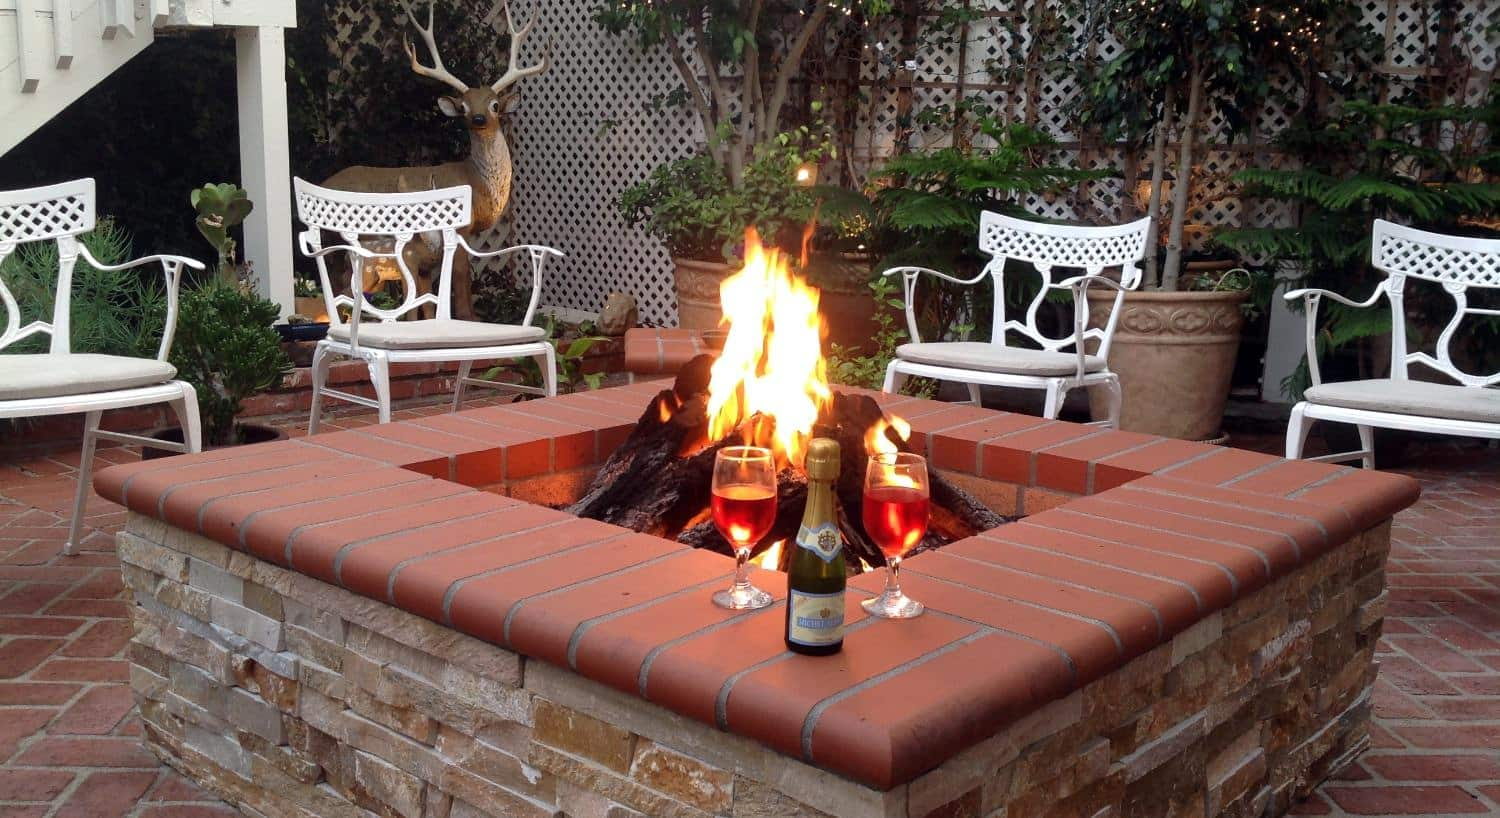 Fire pit made of red brick and light tan stone with a fire, white chairs, wine glasses, and wine